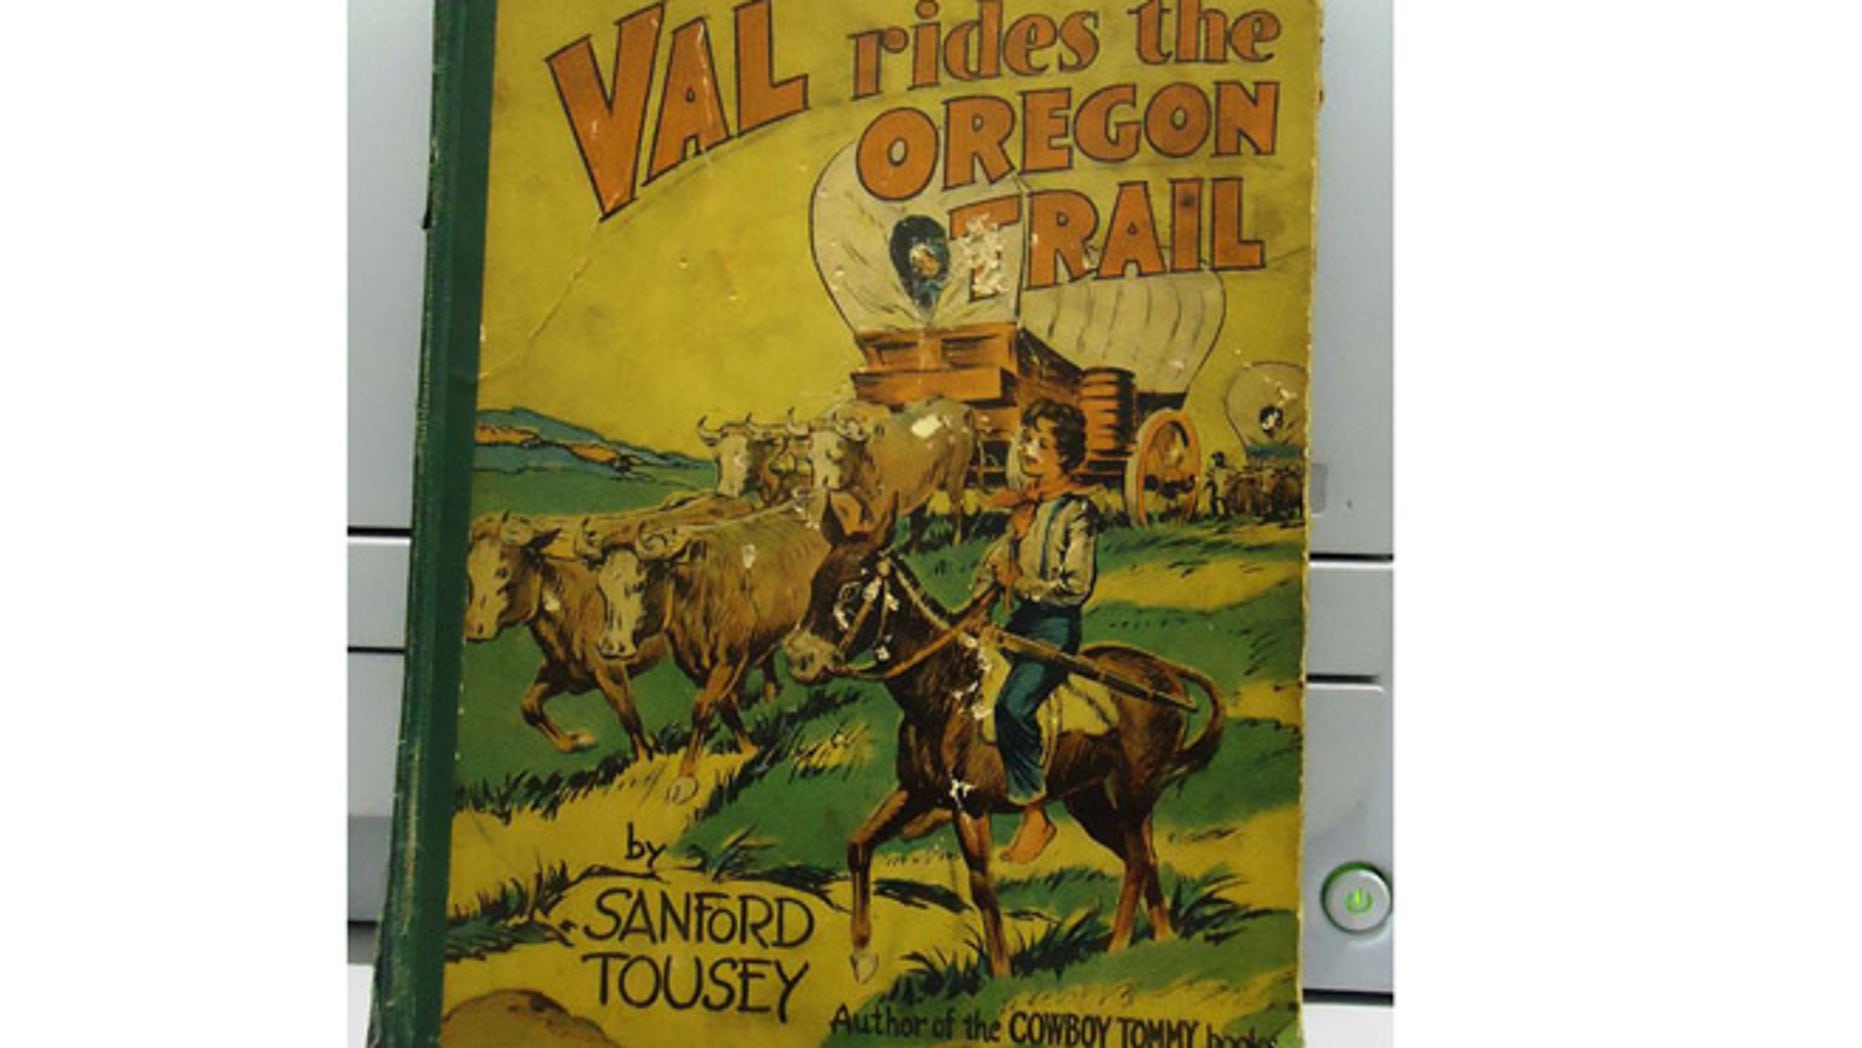 """Robert Lockman Jr. found the book """"Val Rides the Oregon Trail"""" in the basement of his home."""